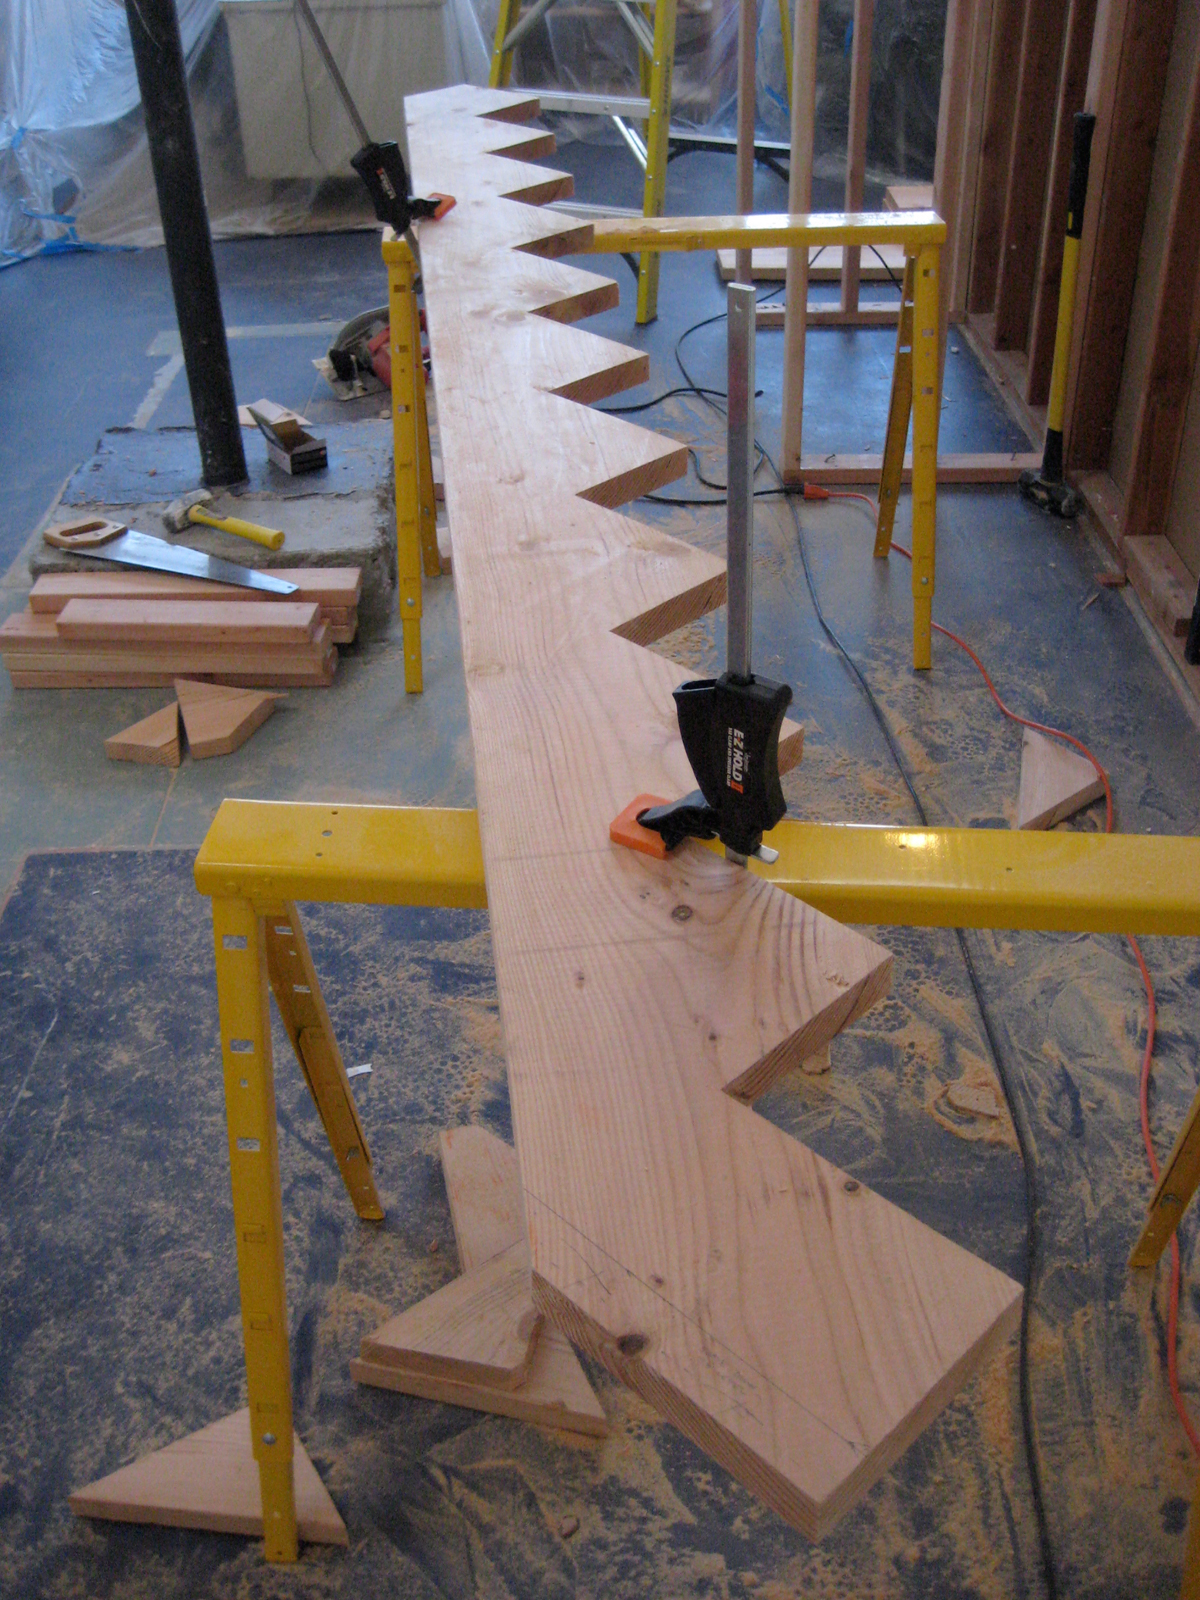 I had a mandate from Lynda—as soon as I demolished the existing stair I had to make a new one within 48 hours, because she didn't want to climb a ladder to get to her clothes. I had never built stairs before, but I did learn how to frame when I worked wit